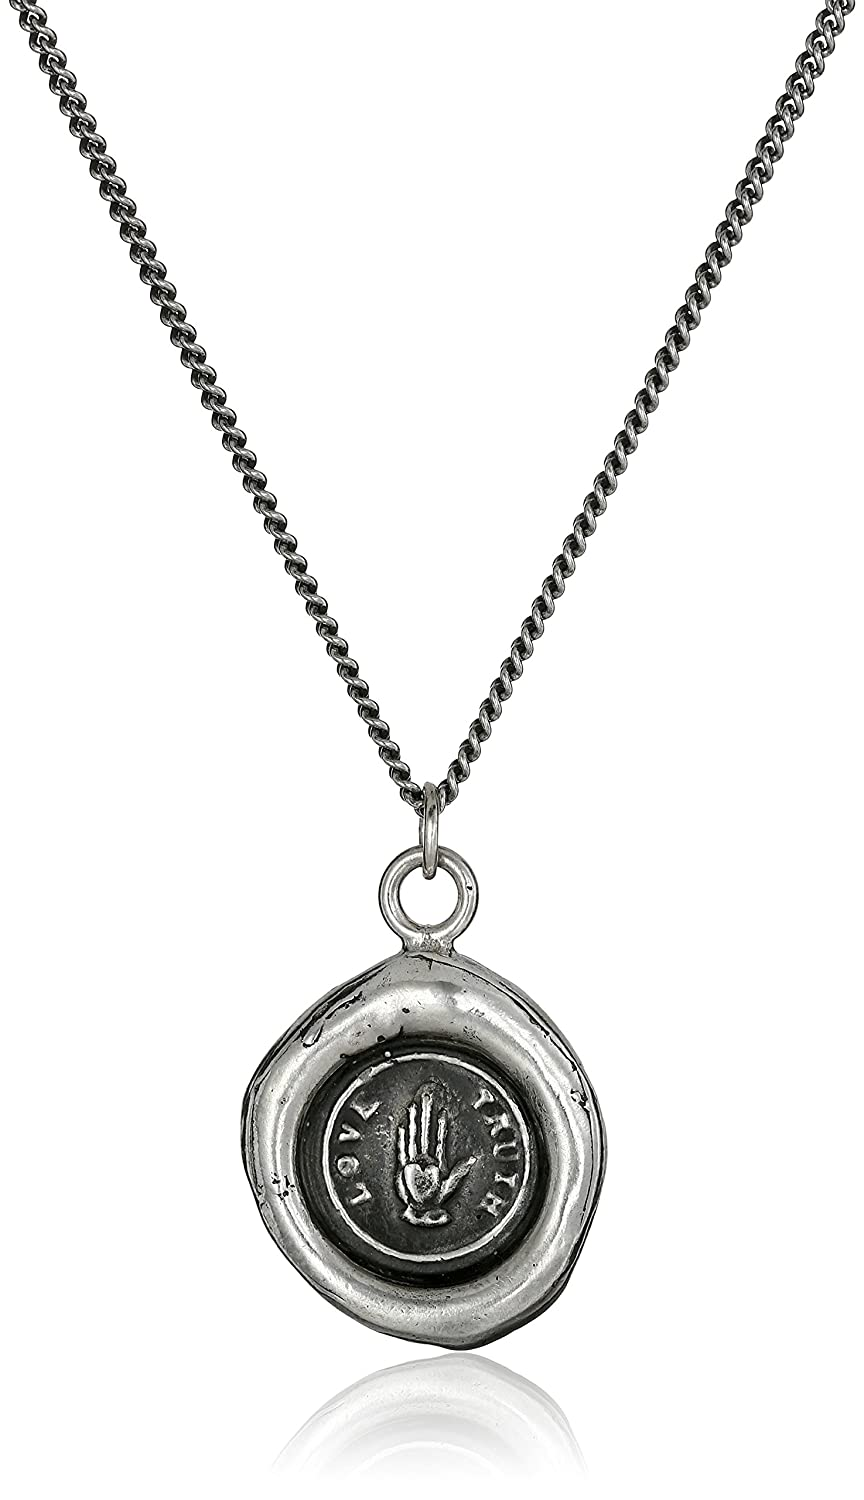 "CDM product Pyrrha""talisman"" Sterling Silver Love Truth Necklace, 18"" small thumbnail image"